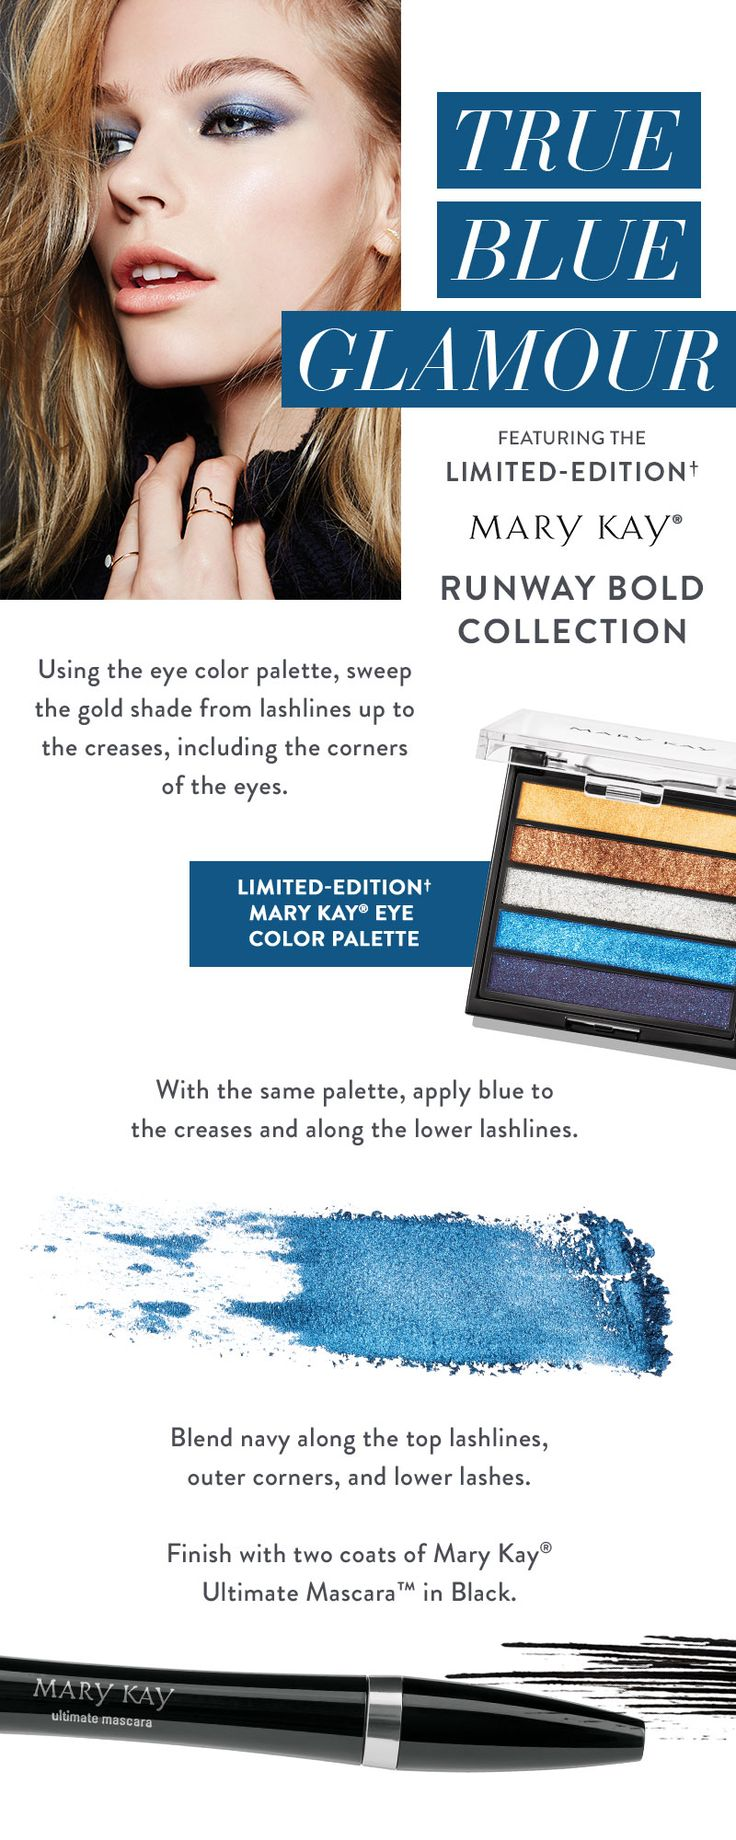 Update your classic smoky eye with intense blue hues! Makeup tip from Mary Kay Global Makeup Artist Keiko Takagi: To give this look an everyday twist, add blue shadow just to the lashlines. | Mary Kay